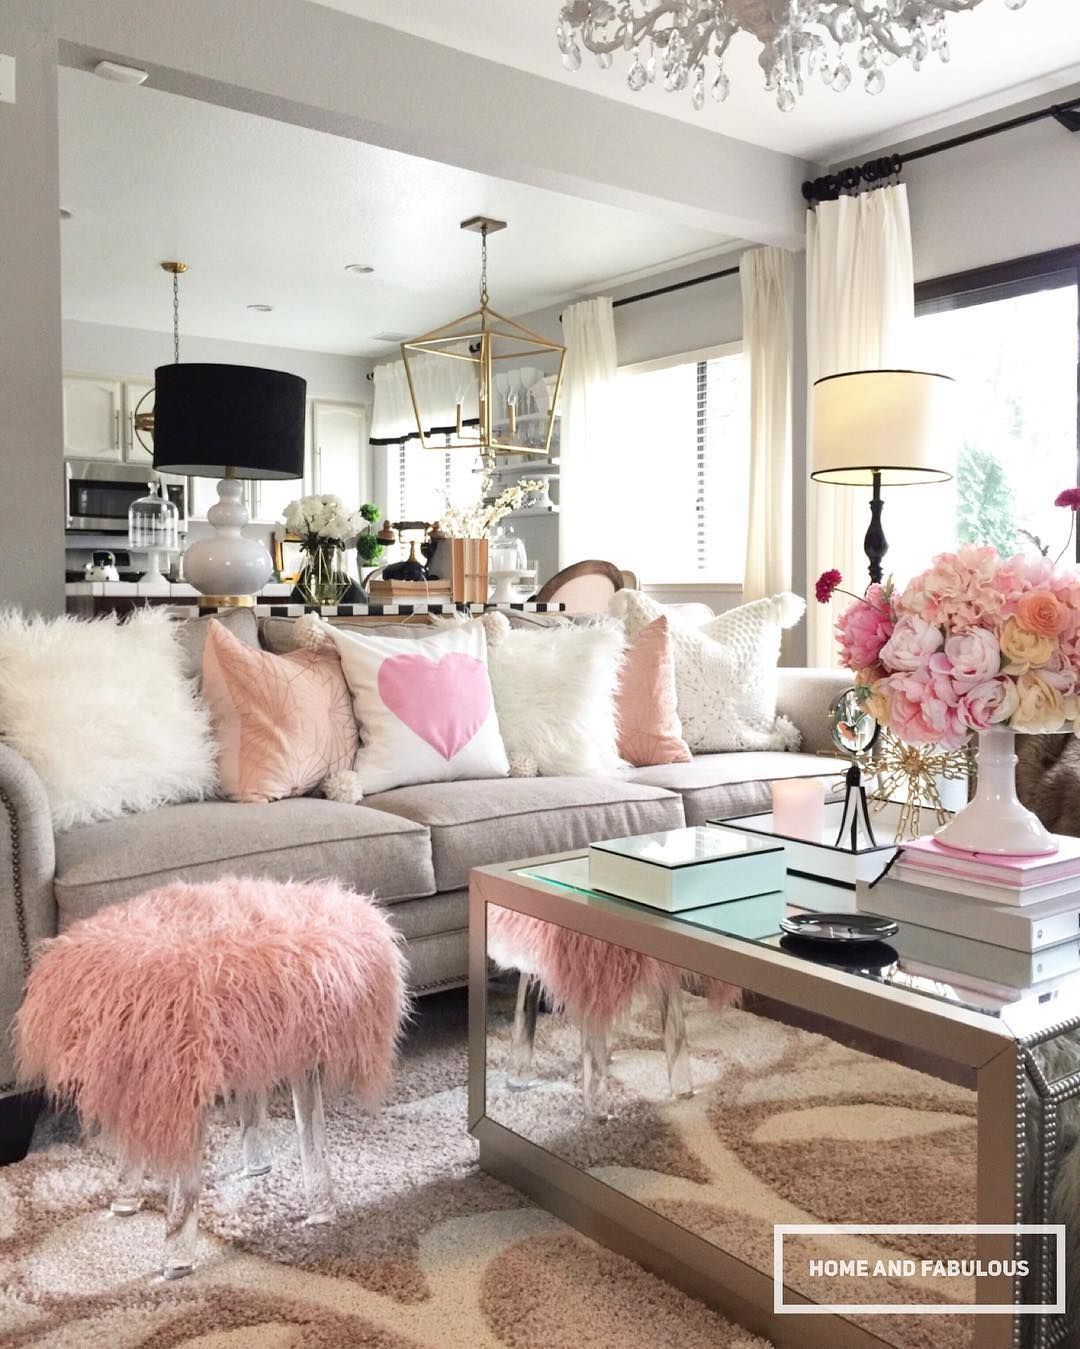 See This Instagram Photo By Homeandfabulous 2 304 Likes Living Room Grey Living Room Decor Glam Living Room #small #glam #living #room